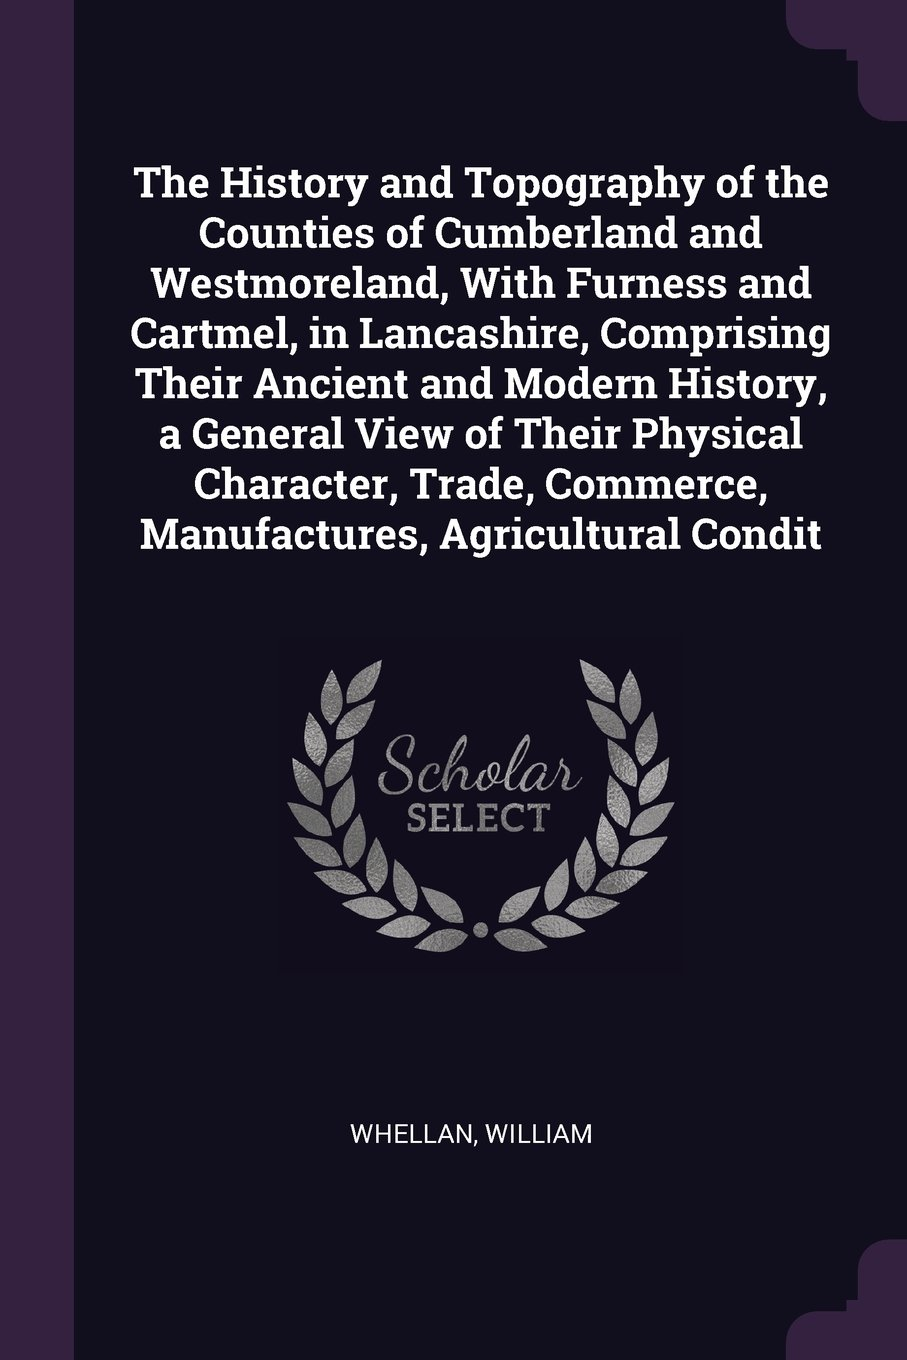 Read Online The History and Topography of the Counties of Cumberland and Westmoreland, with Furness and Cartmel, in Lancashire, Comprising Their Ancient and ... Commerce, Manufactures, Agricultural Condit PDF ePub fb2 book